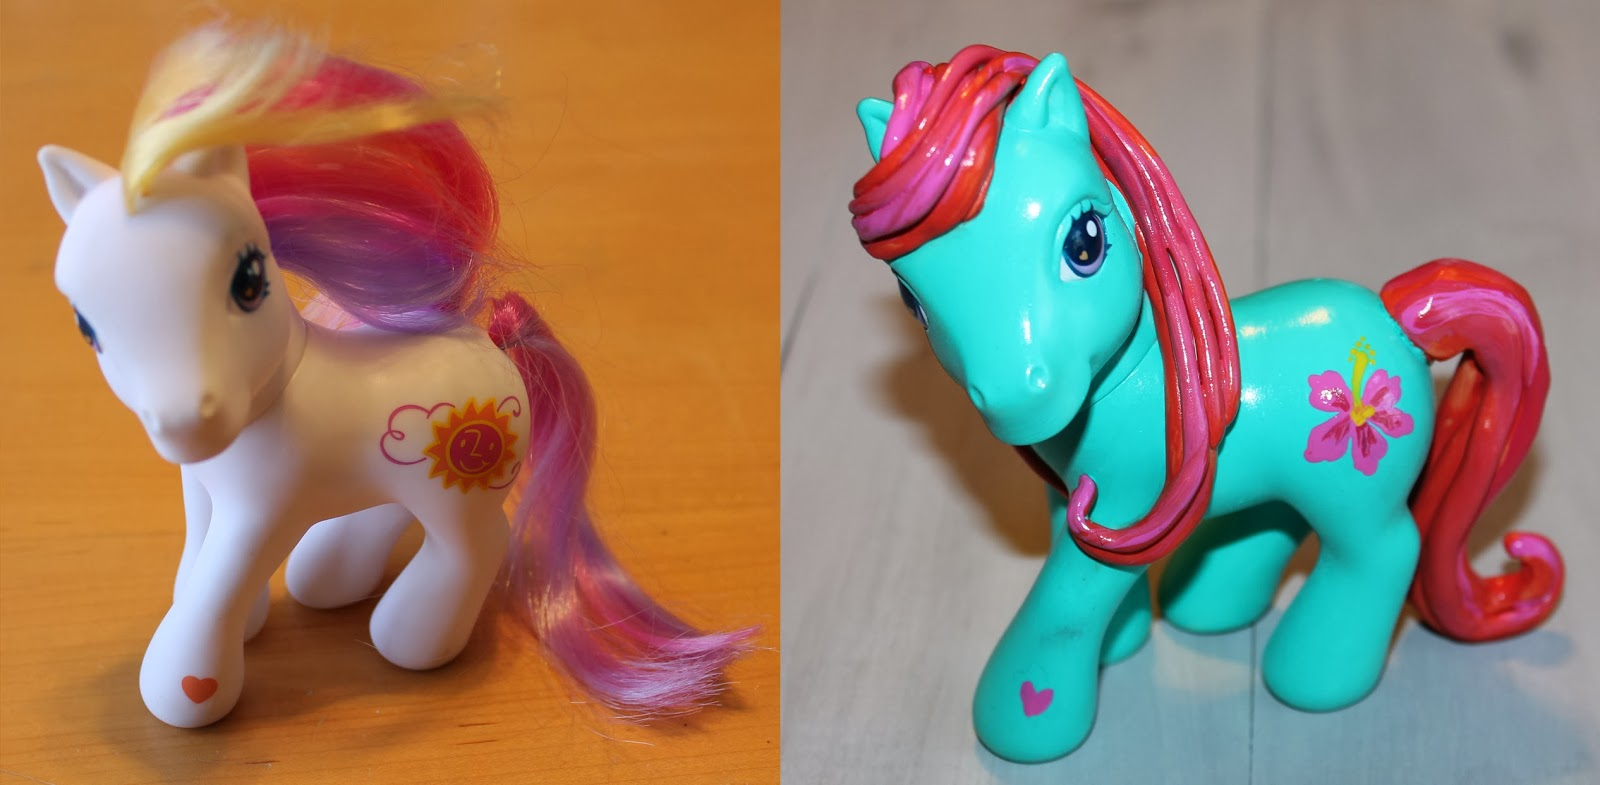 http://doodlecraft.blogspot.com/2013/04/diy-custom-my-little-ponies.html